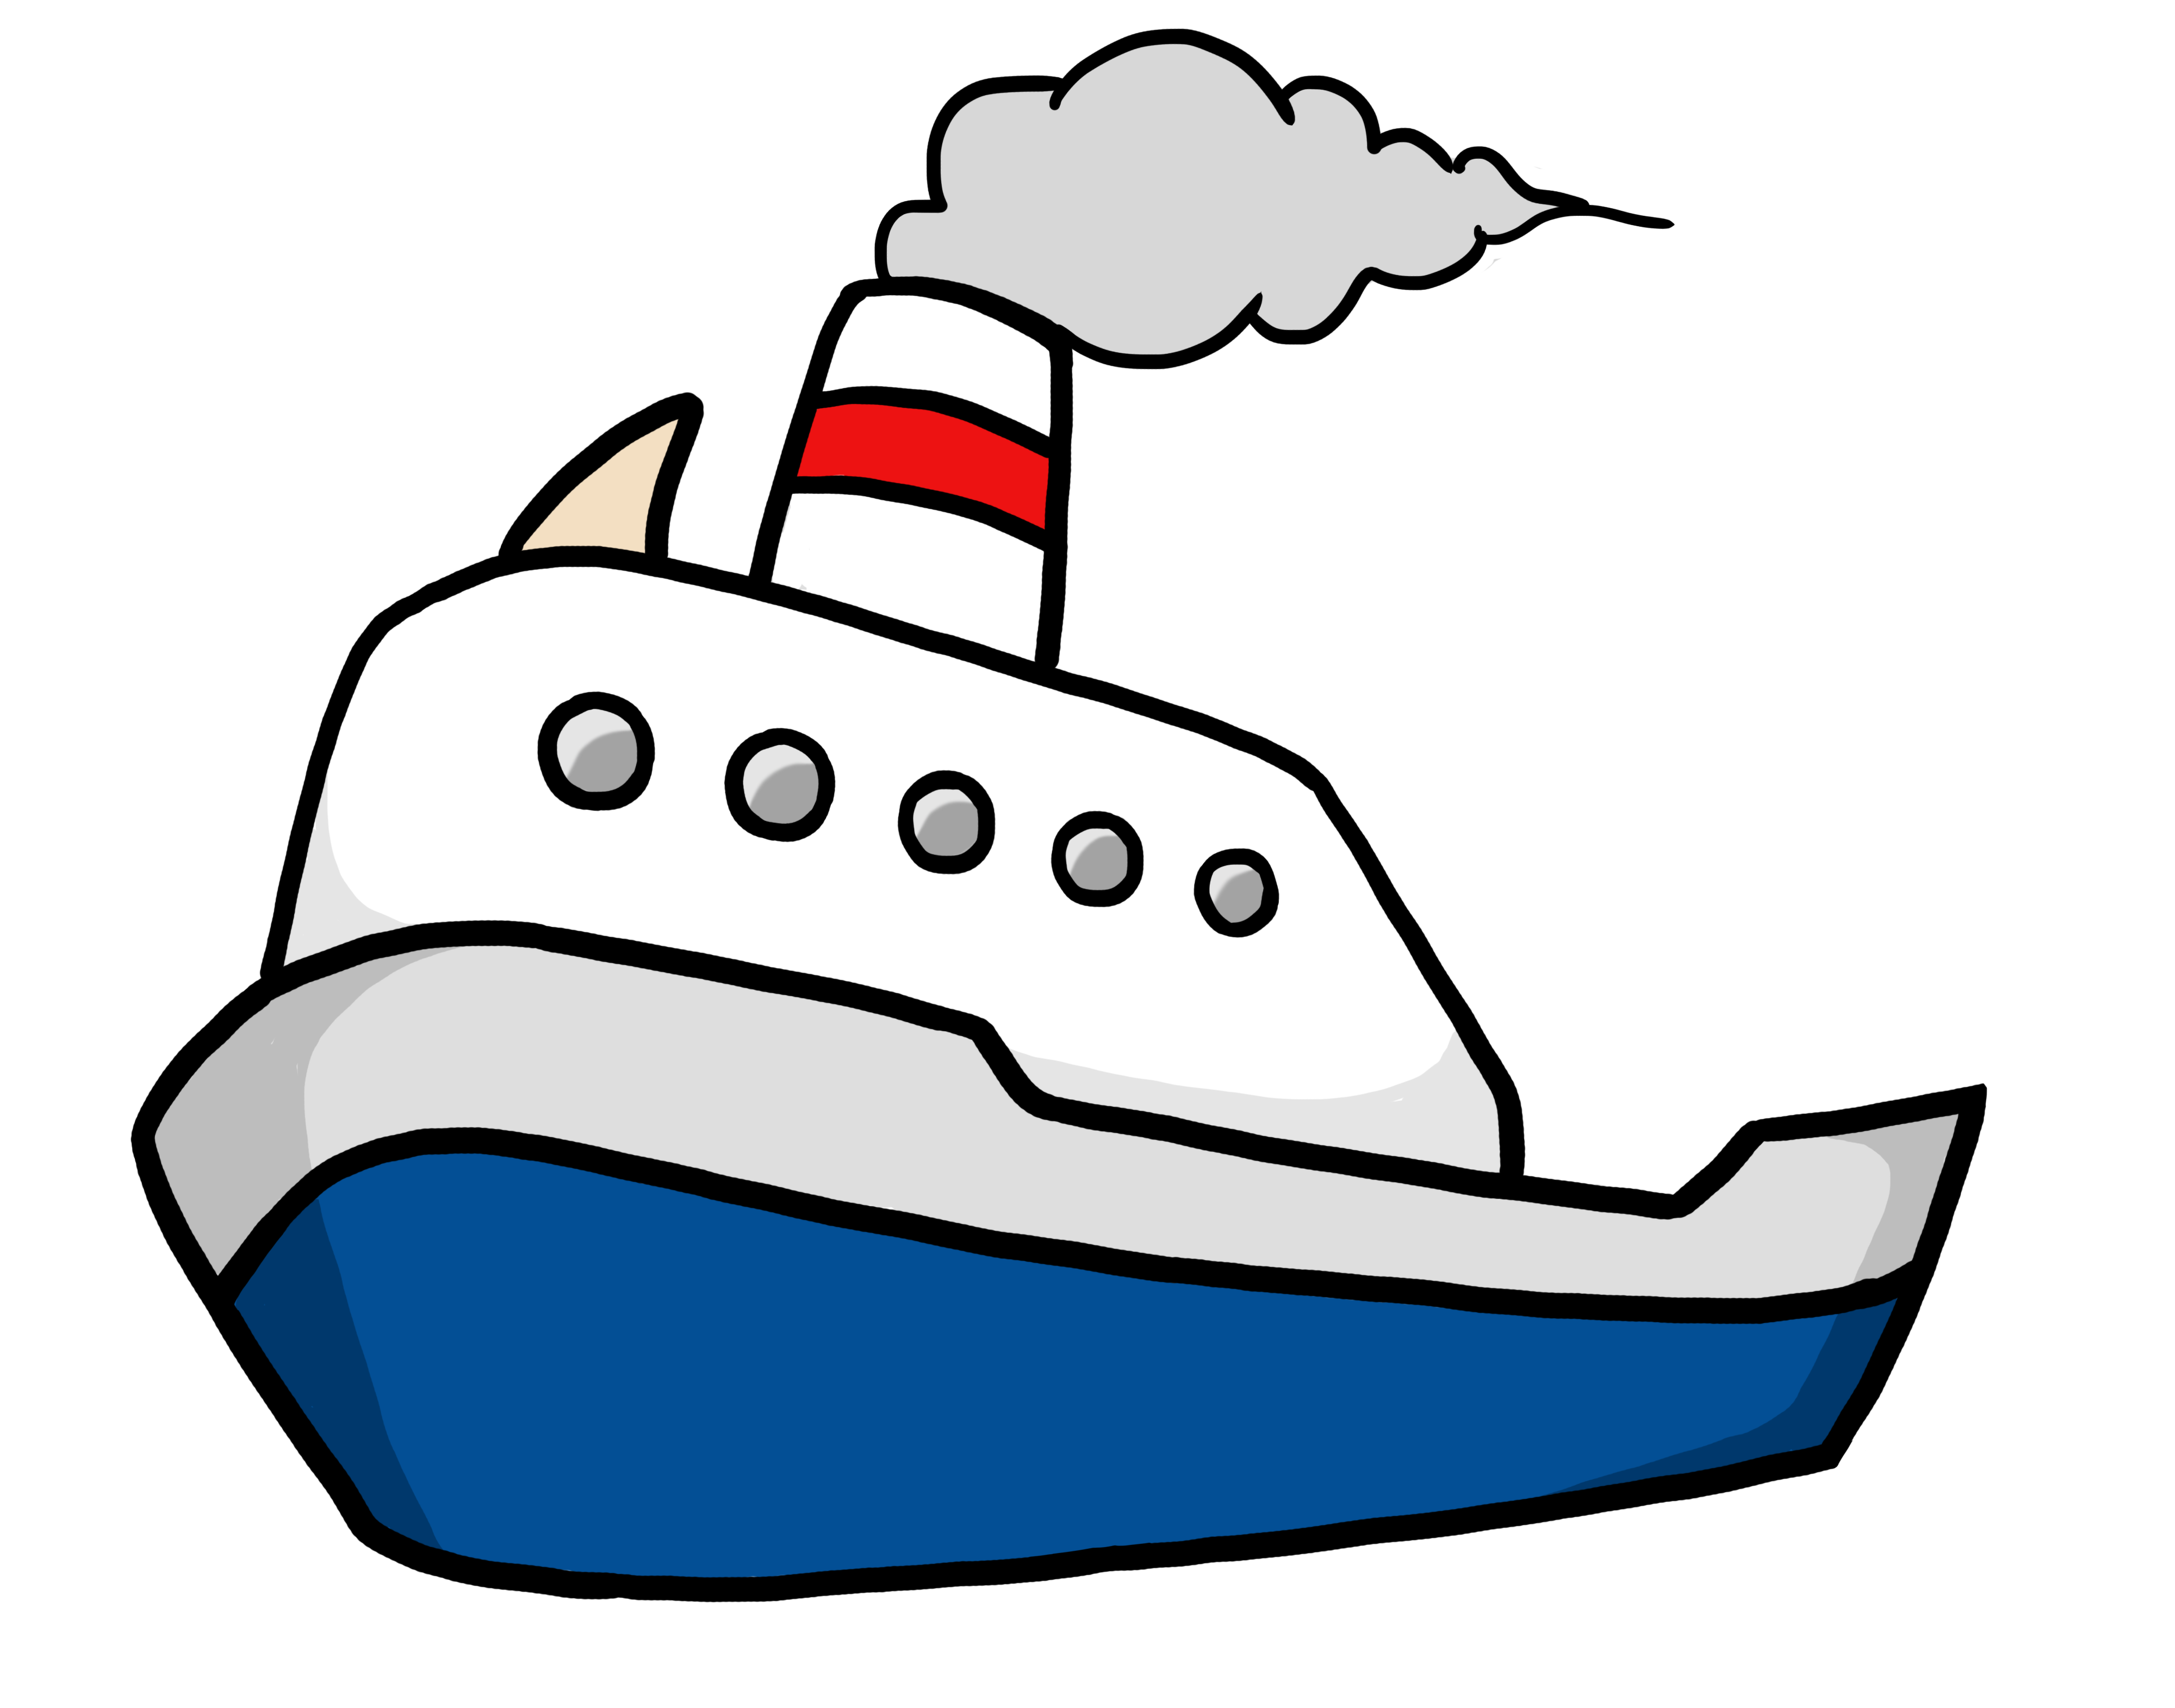 4000x3142 Ship Clip Art Free Free Clipart Images